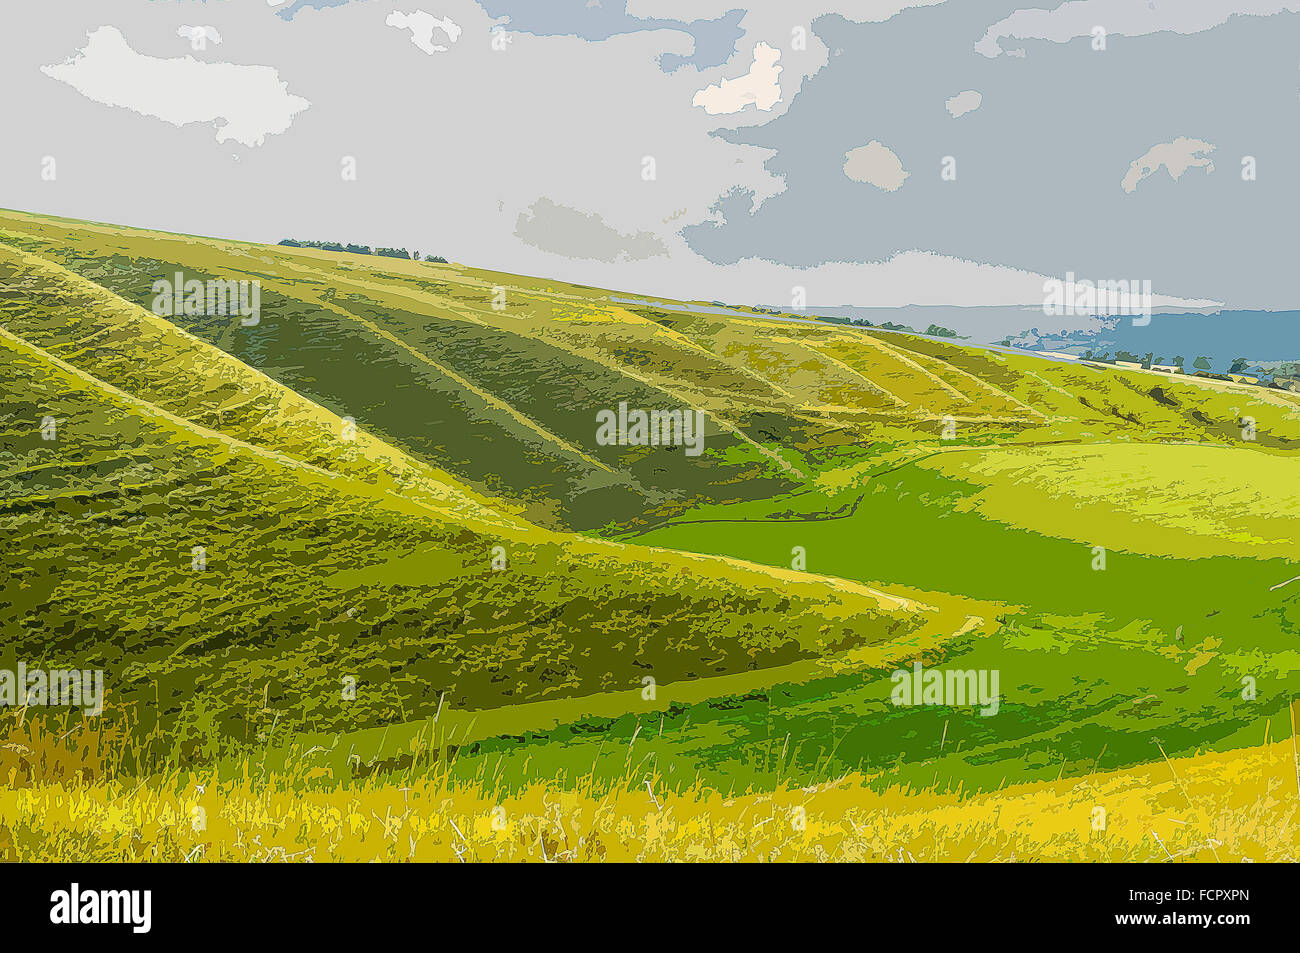 A poster style illustration from a photograph of the Oxfordshire Downs near Uffington, Oxfordshire,  England, UK Stock Photo